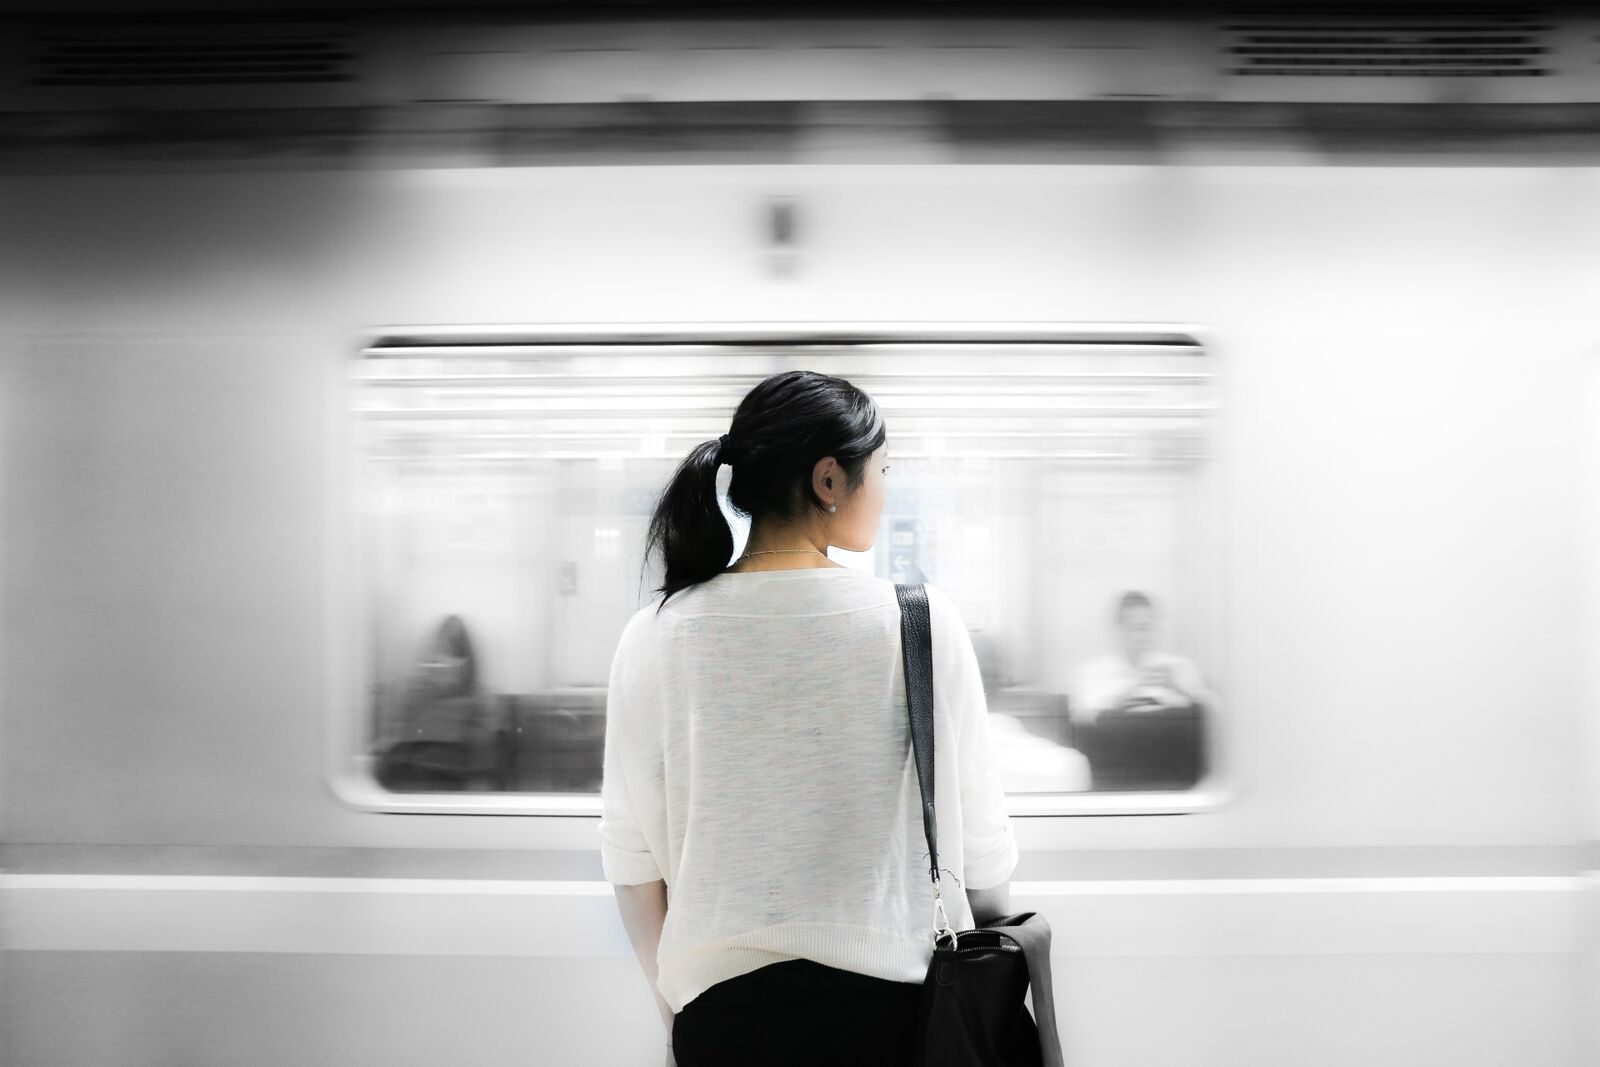 woman, transit, train, subway, underground, blackhair,  young woman, commuter